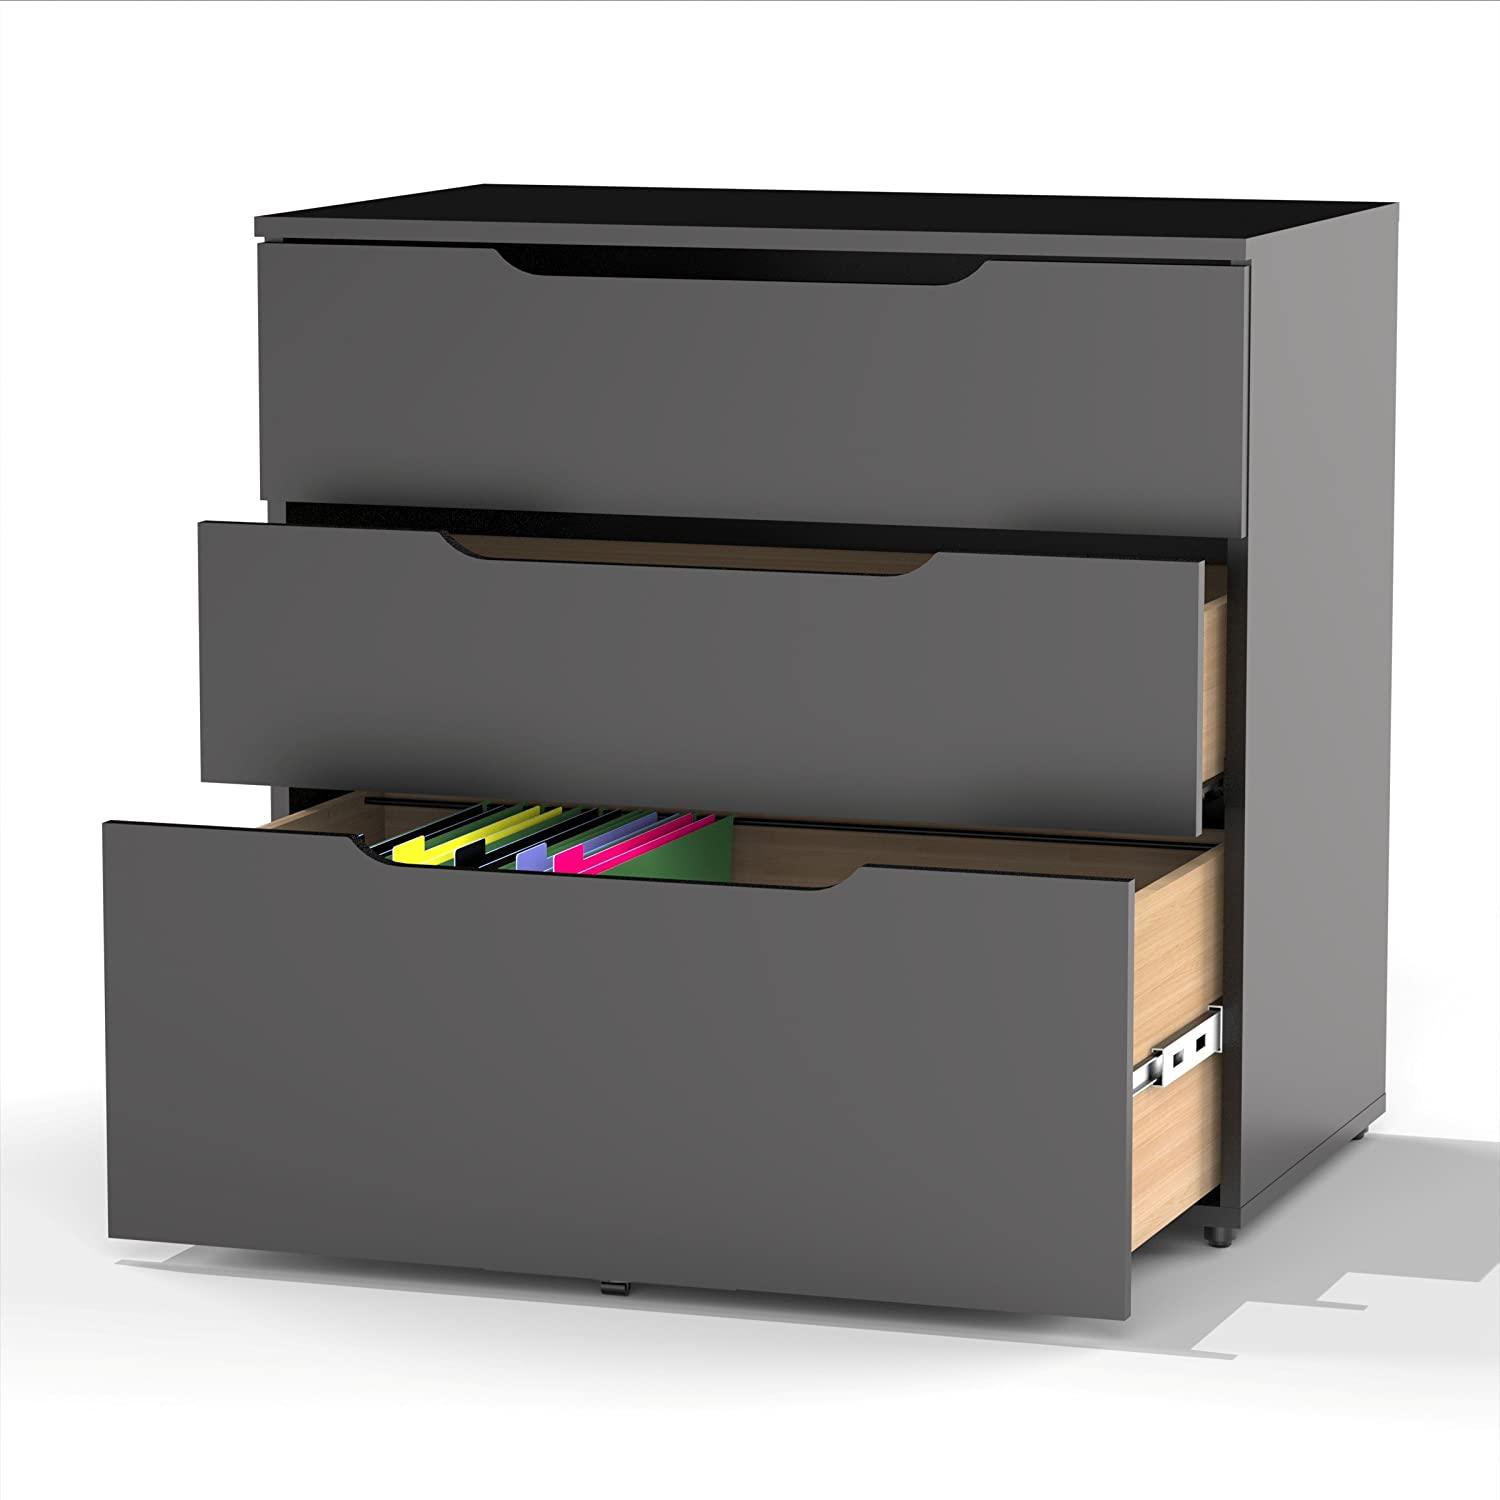 Beau Amazon.com: Next 3 Drawer Filing Cabinet 600306 From Nexera, Black: Home U0026  Kitchen